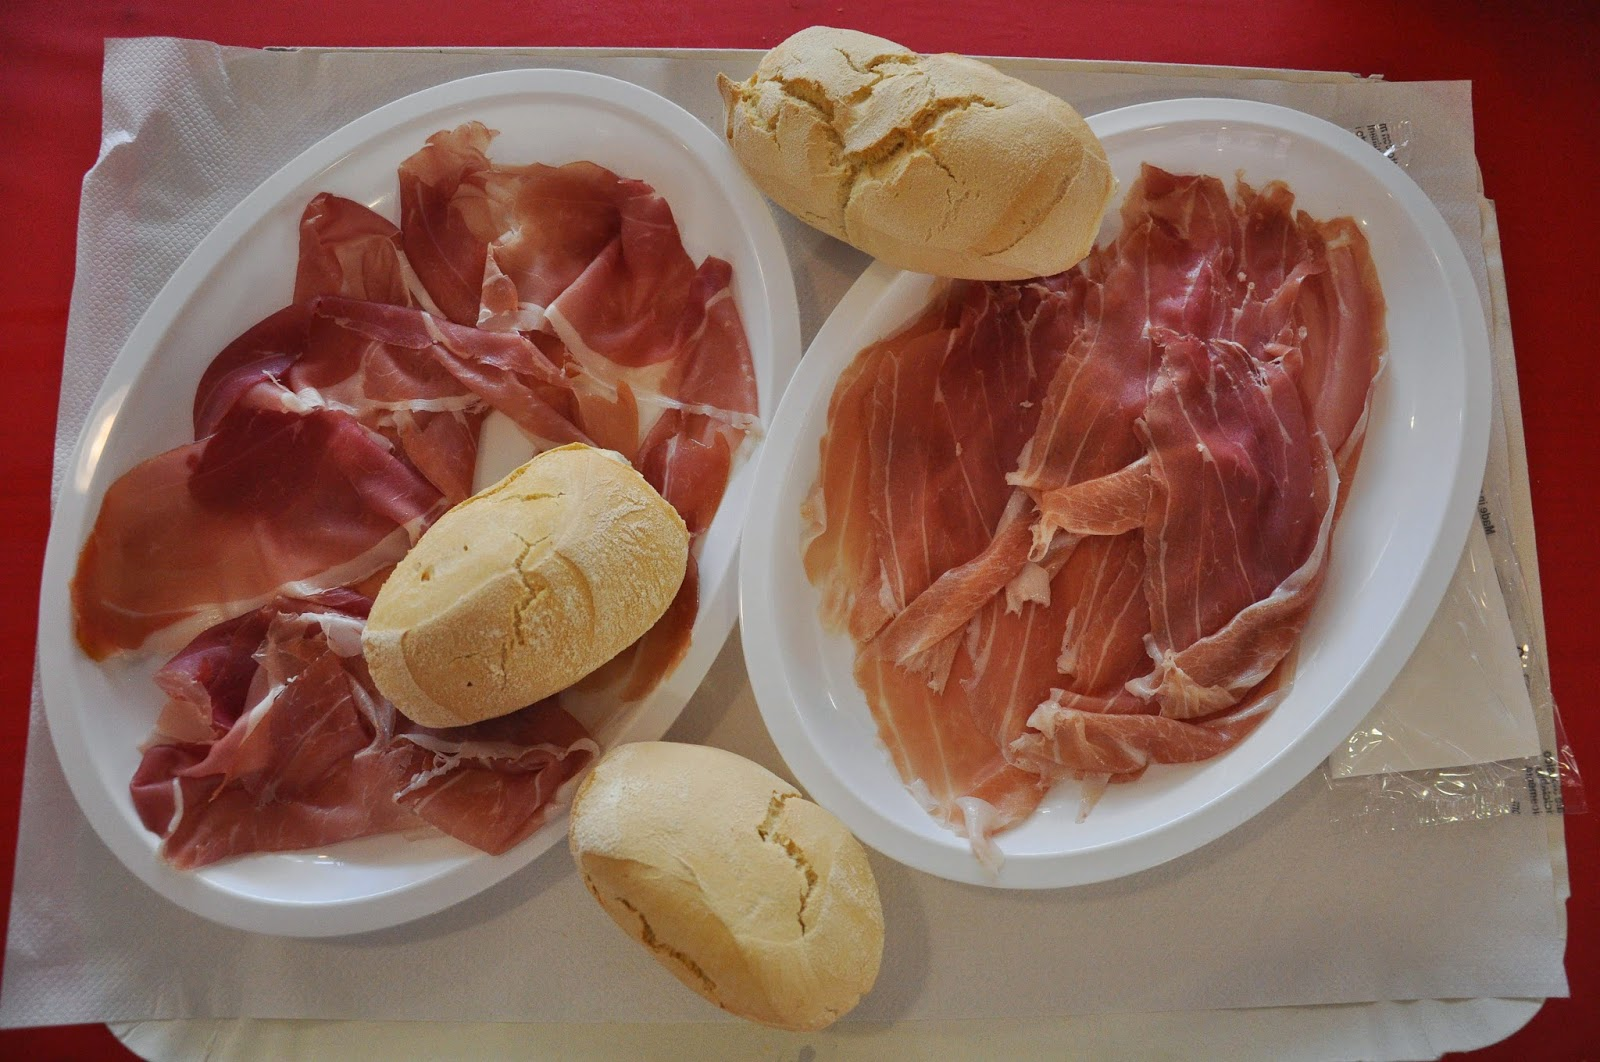 Plates with prosciutto in the prosciutto marquee in Montagnana, Veneto, Italy